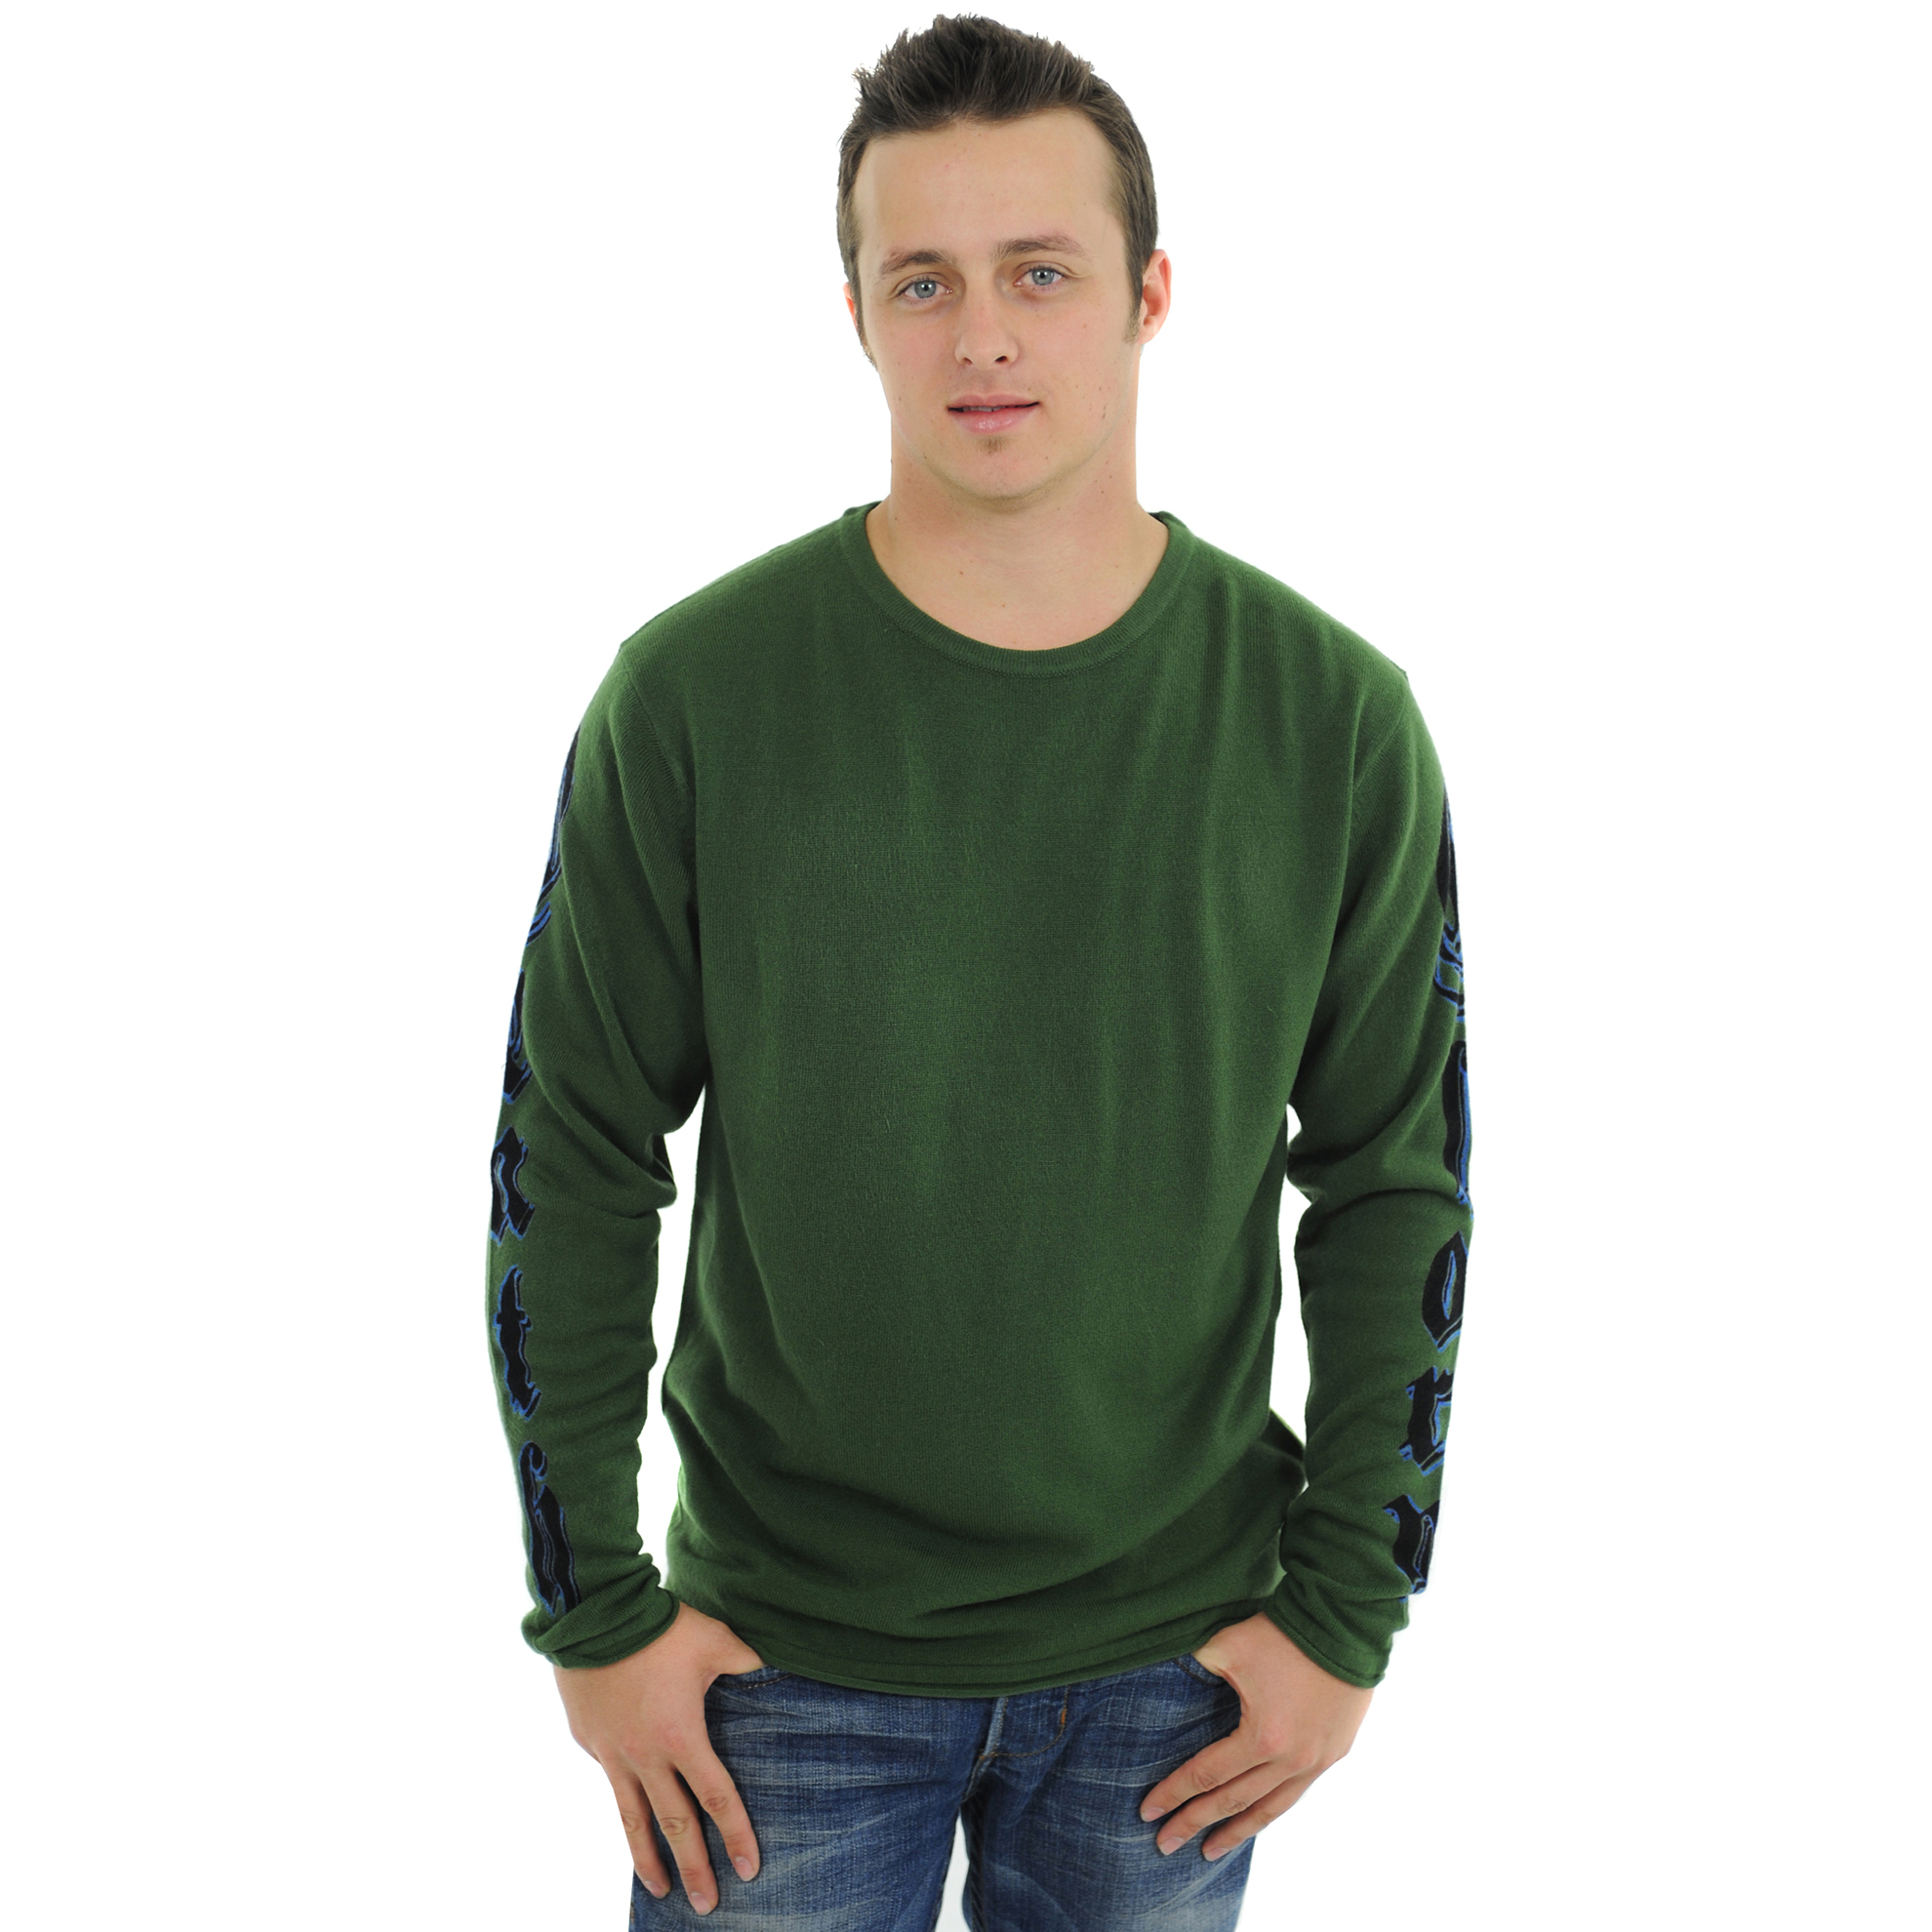 RAW 7 G09H03-GRN-PANTHER RAW7 Men's 100% Acrylic Crewneck Sweater Panther Design - Green